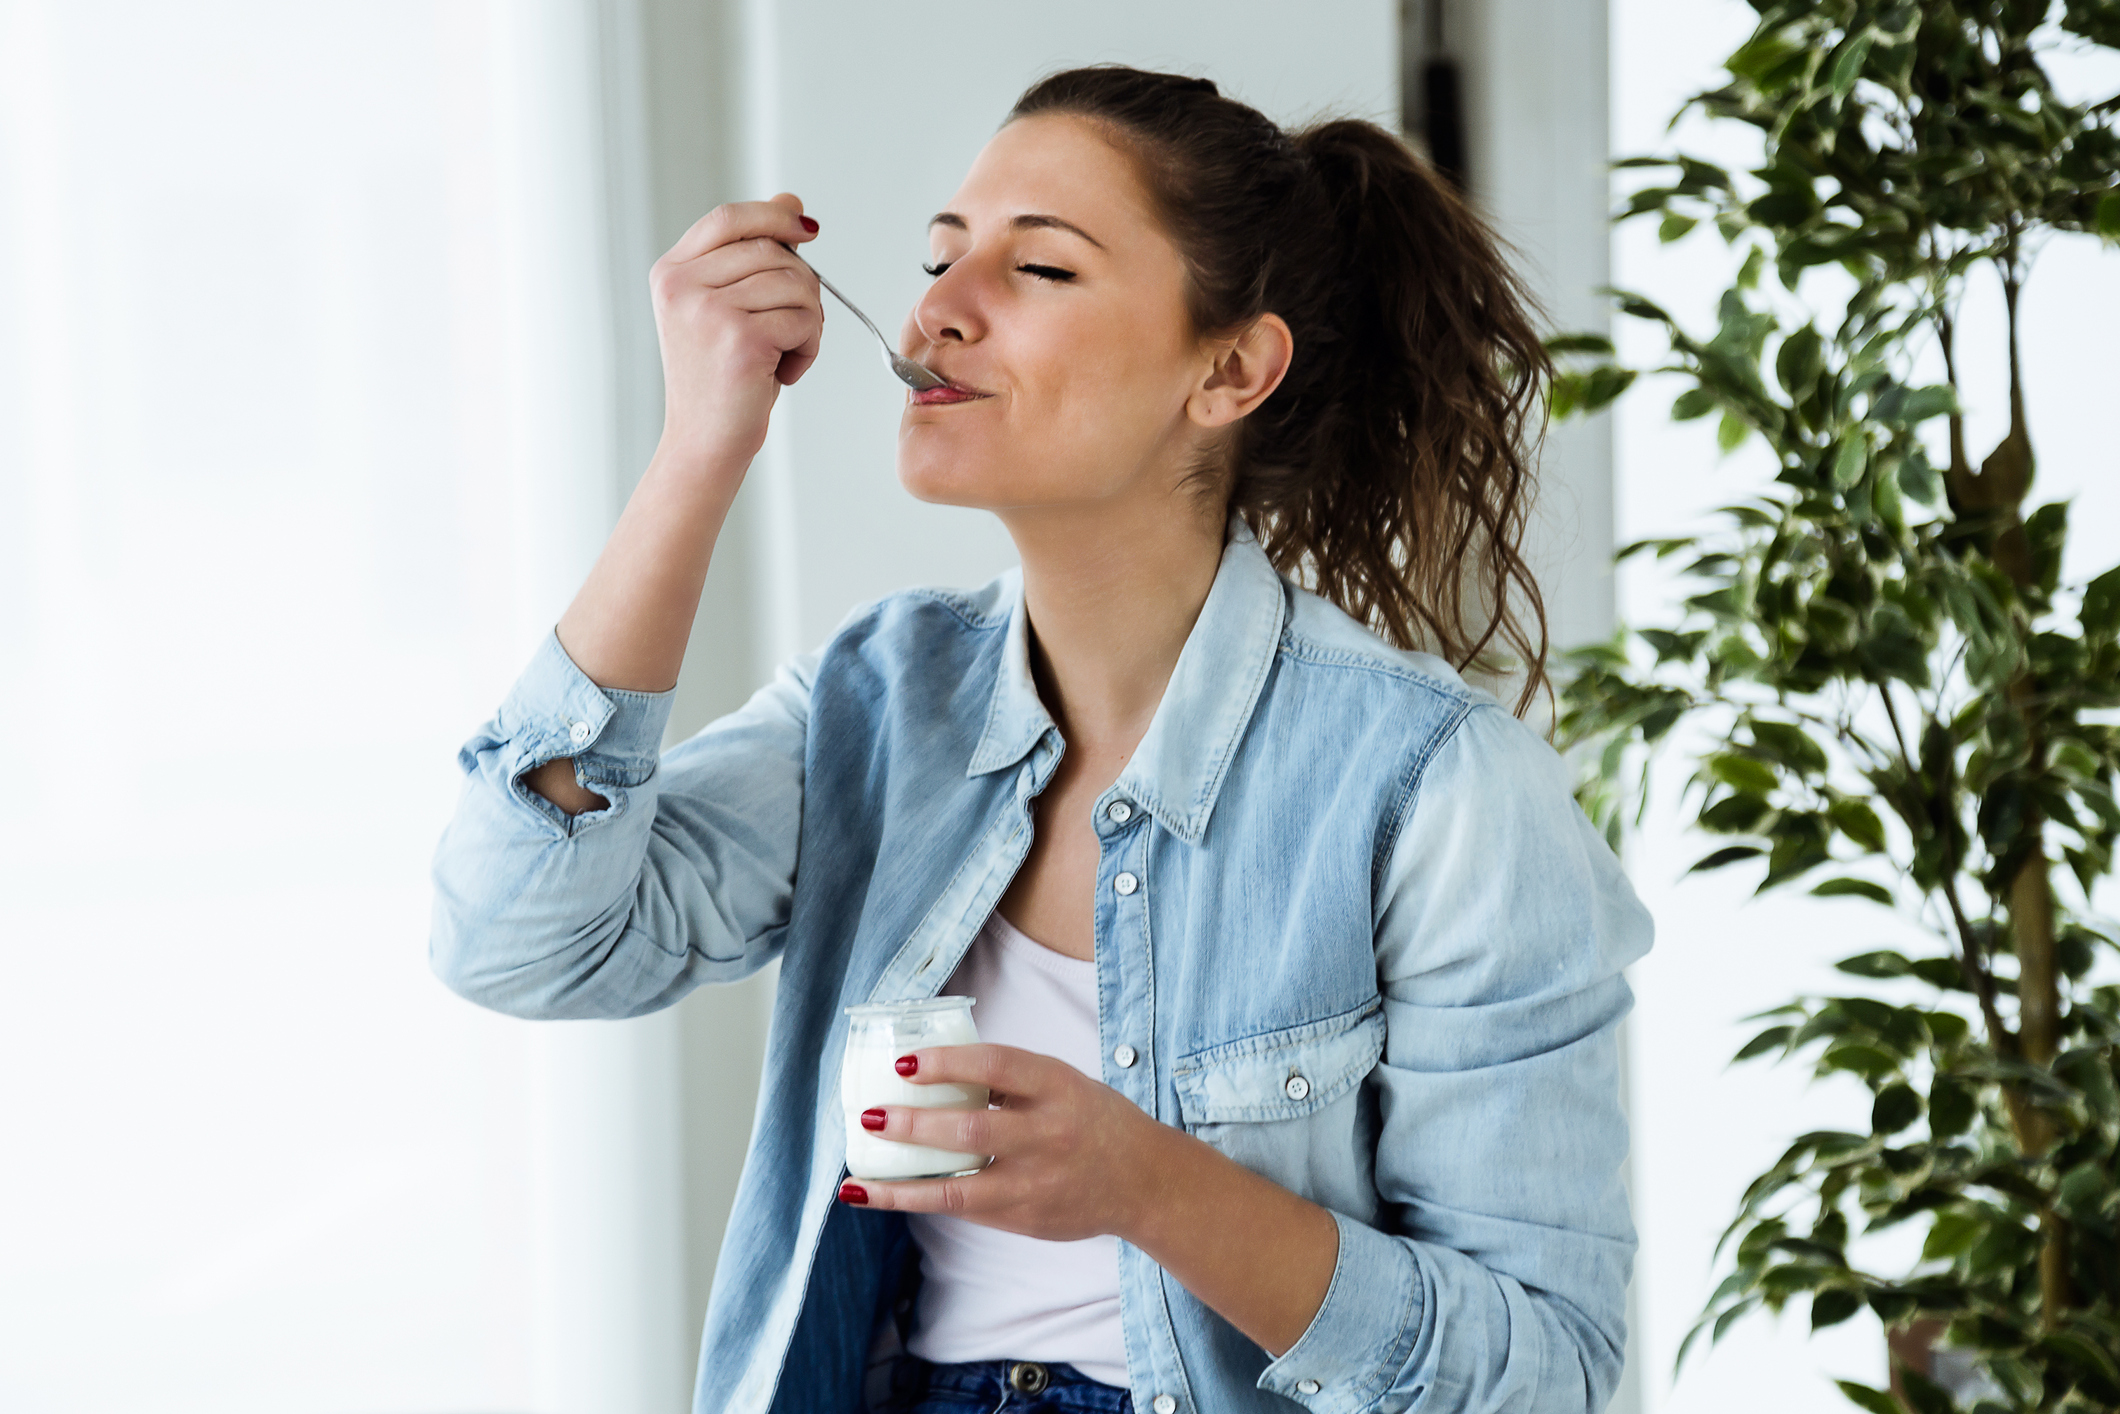 Generic photo of young woman eating yogurt at home (Thinkstock/PA)